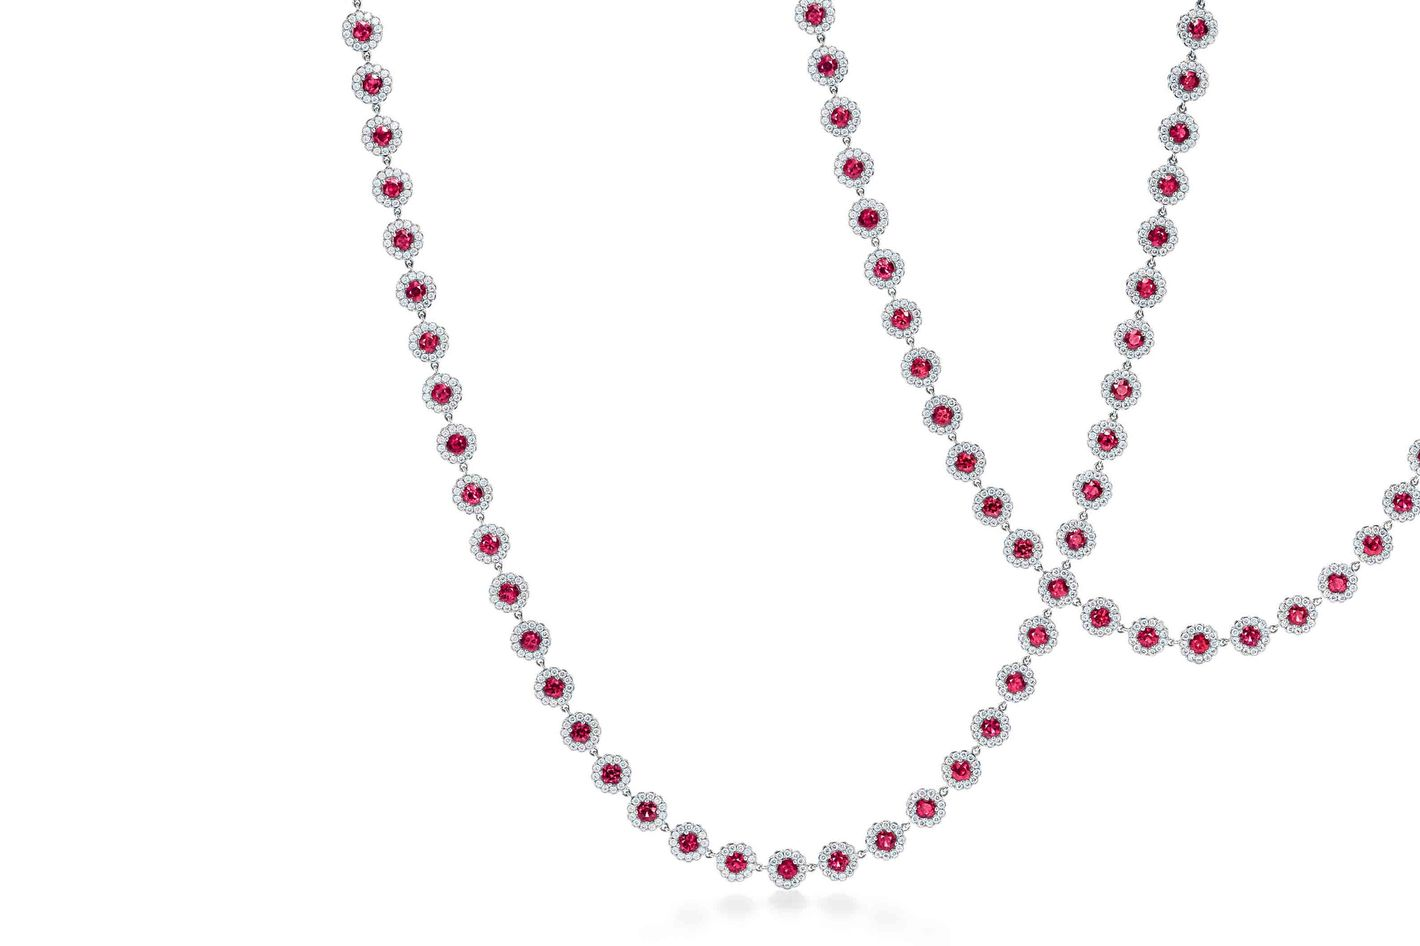 Tiffany & Co. Cobblestone necklace in platinum with rubies and diamonds